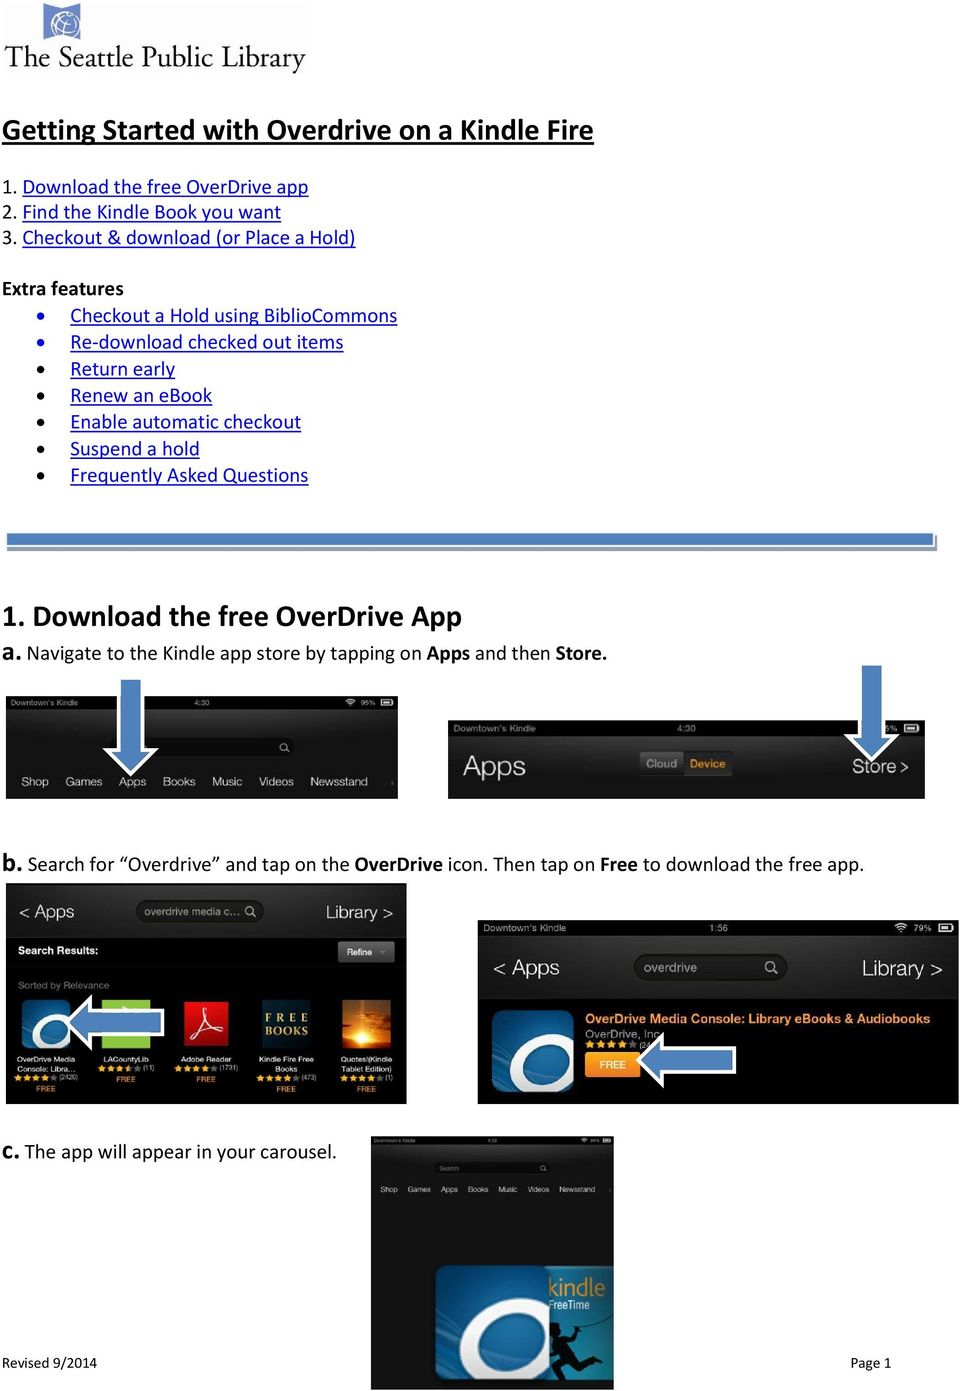 getting started with overdrive on a kindle fire pdf